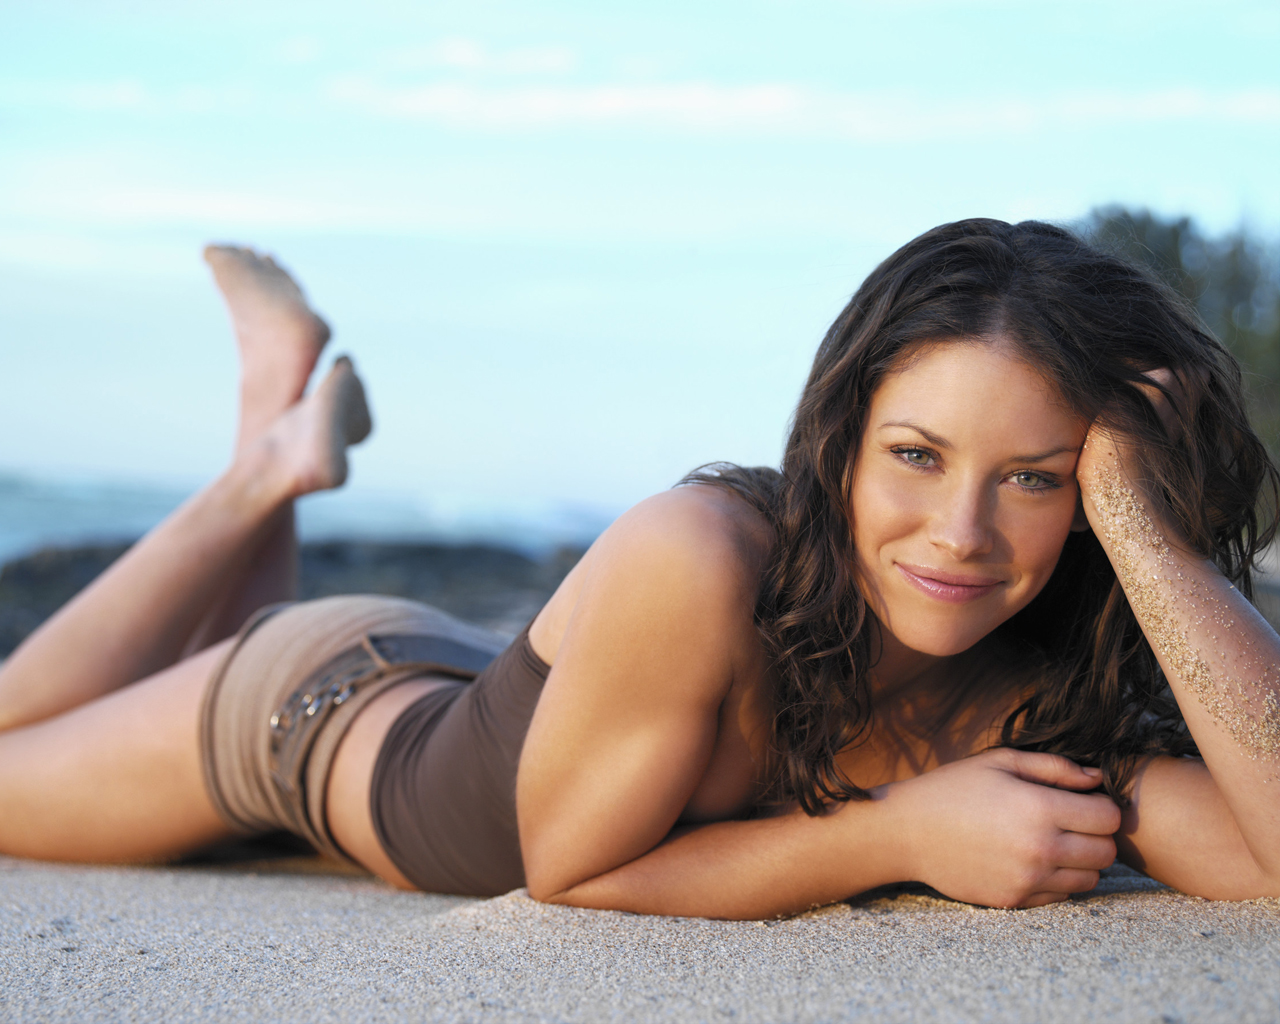 08 Jan 2005 --- Evangeline Lilly --- Image by © Art Streiber/Corbis Outline